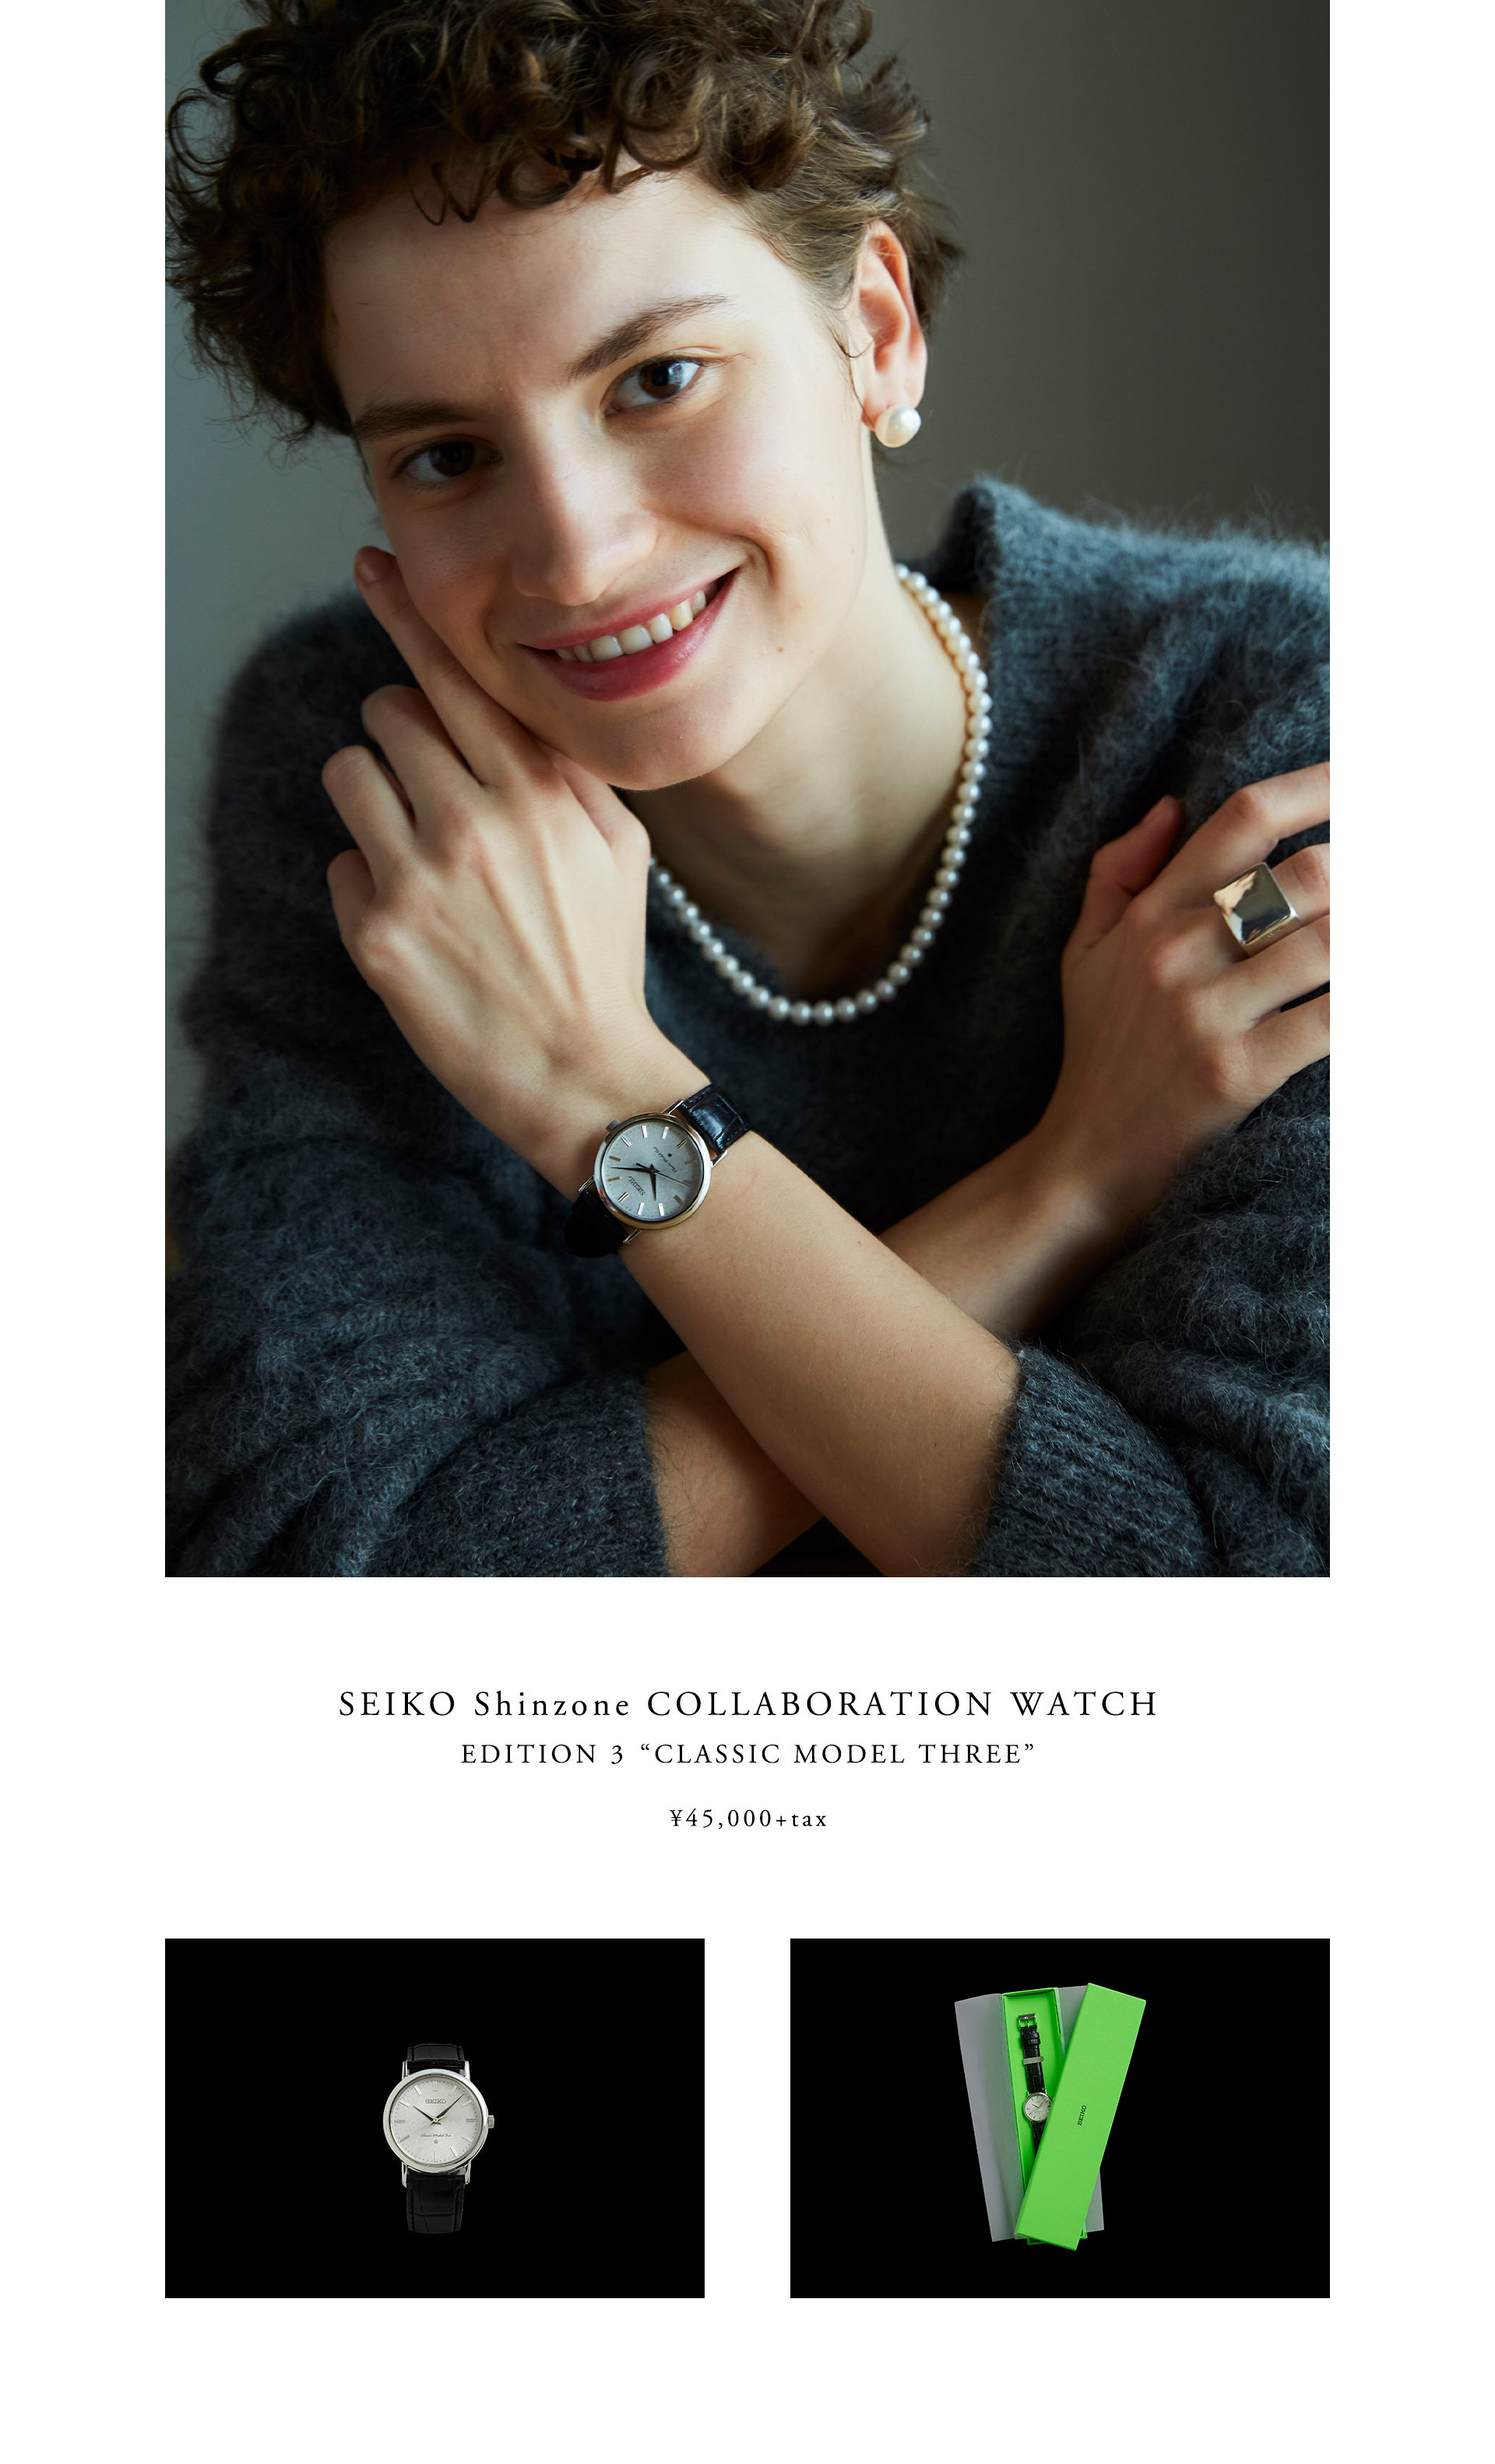 NEWS_SEIKO_Shinzone_COLLABORATION_WATCH